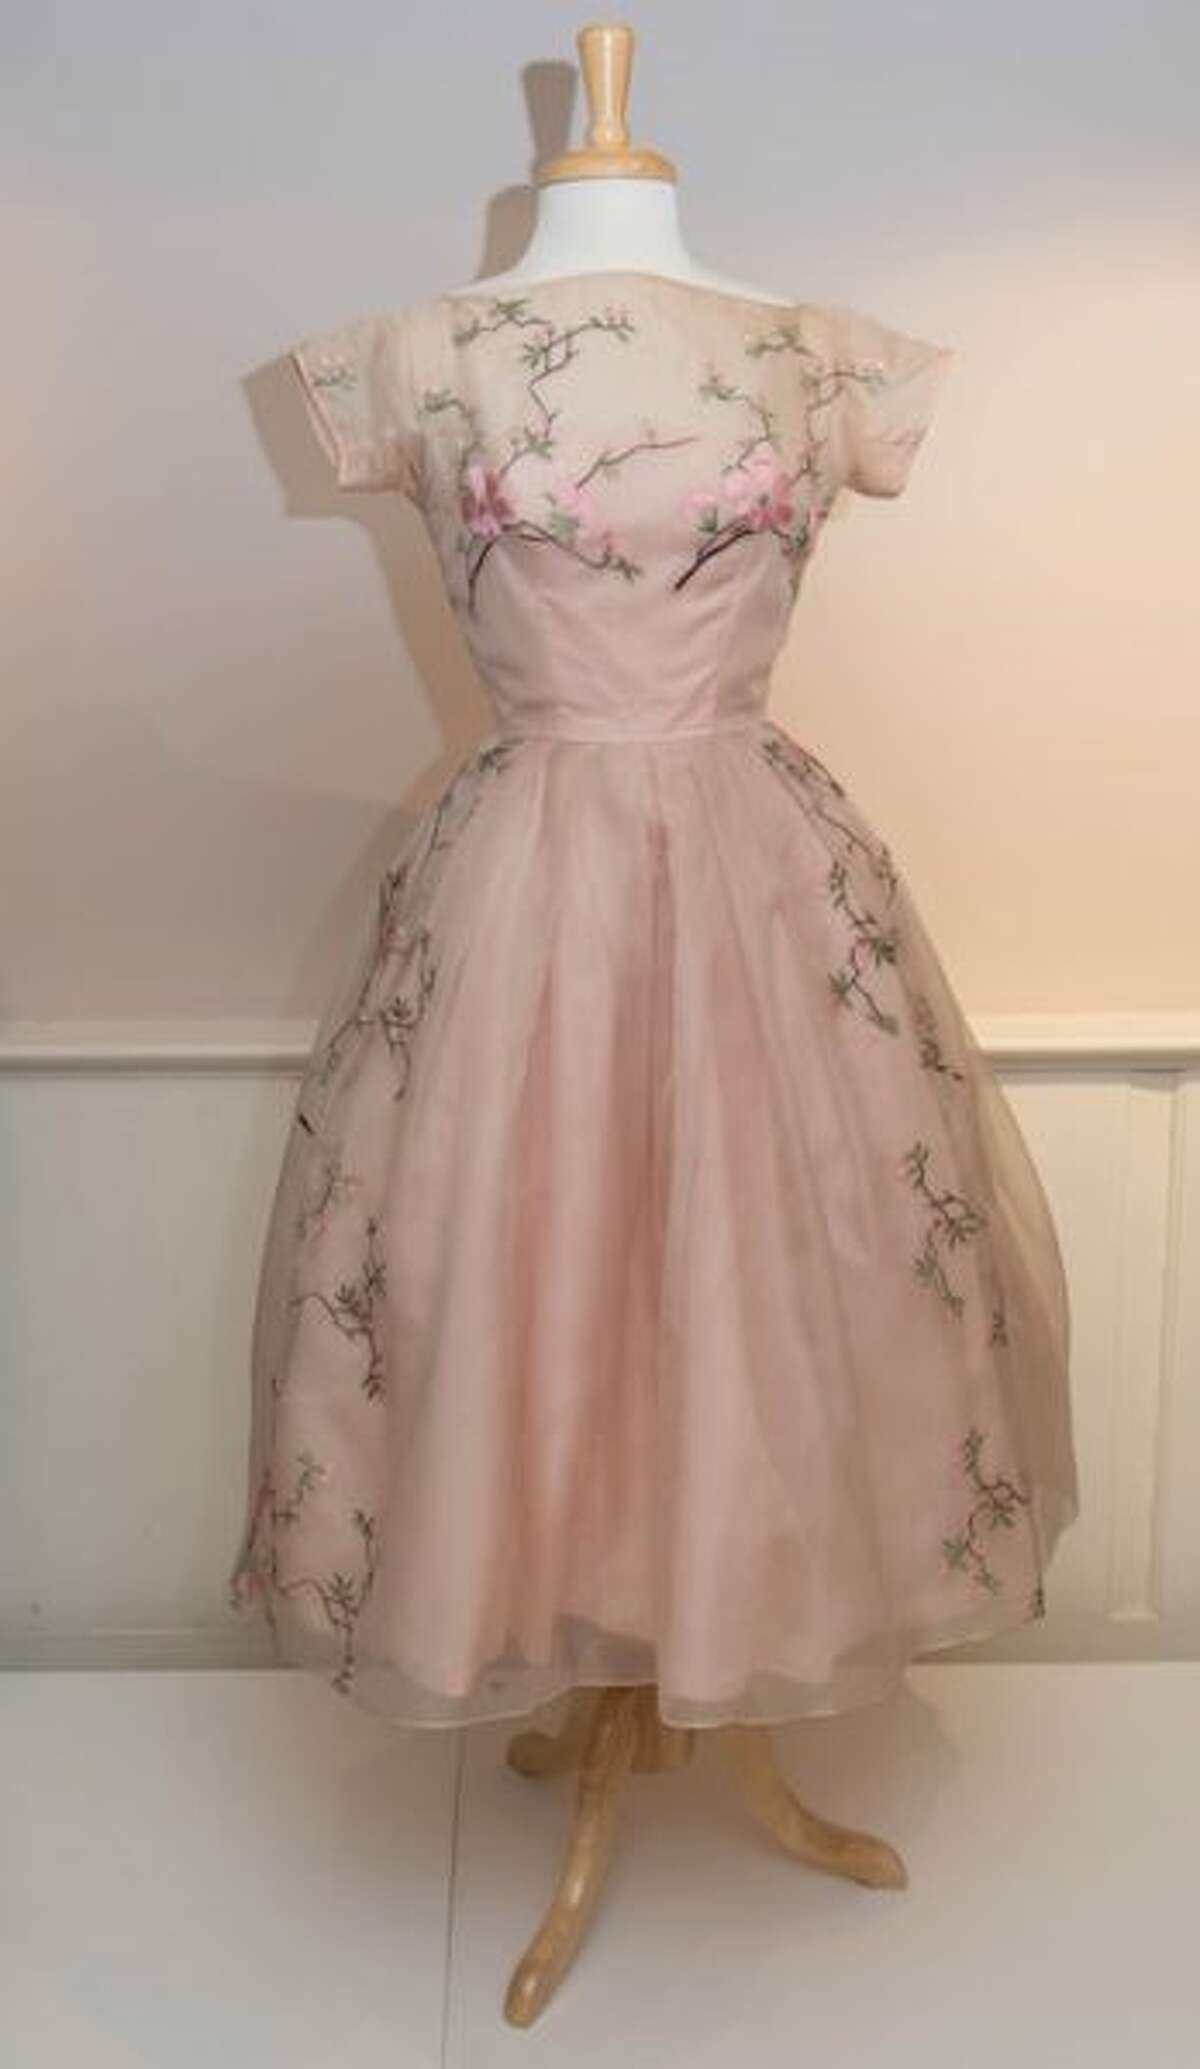 """A pink dress from the 1950s-60s, inspired by Christian Dior's """"New Look."""""""